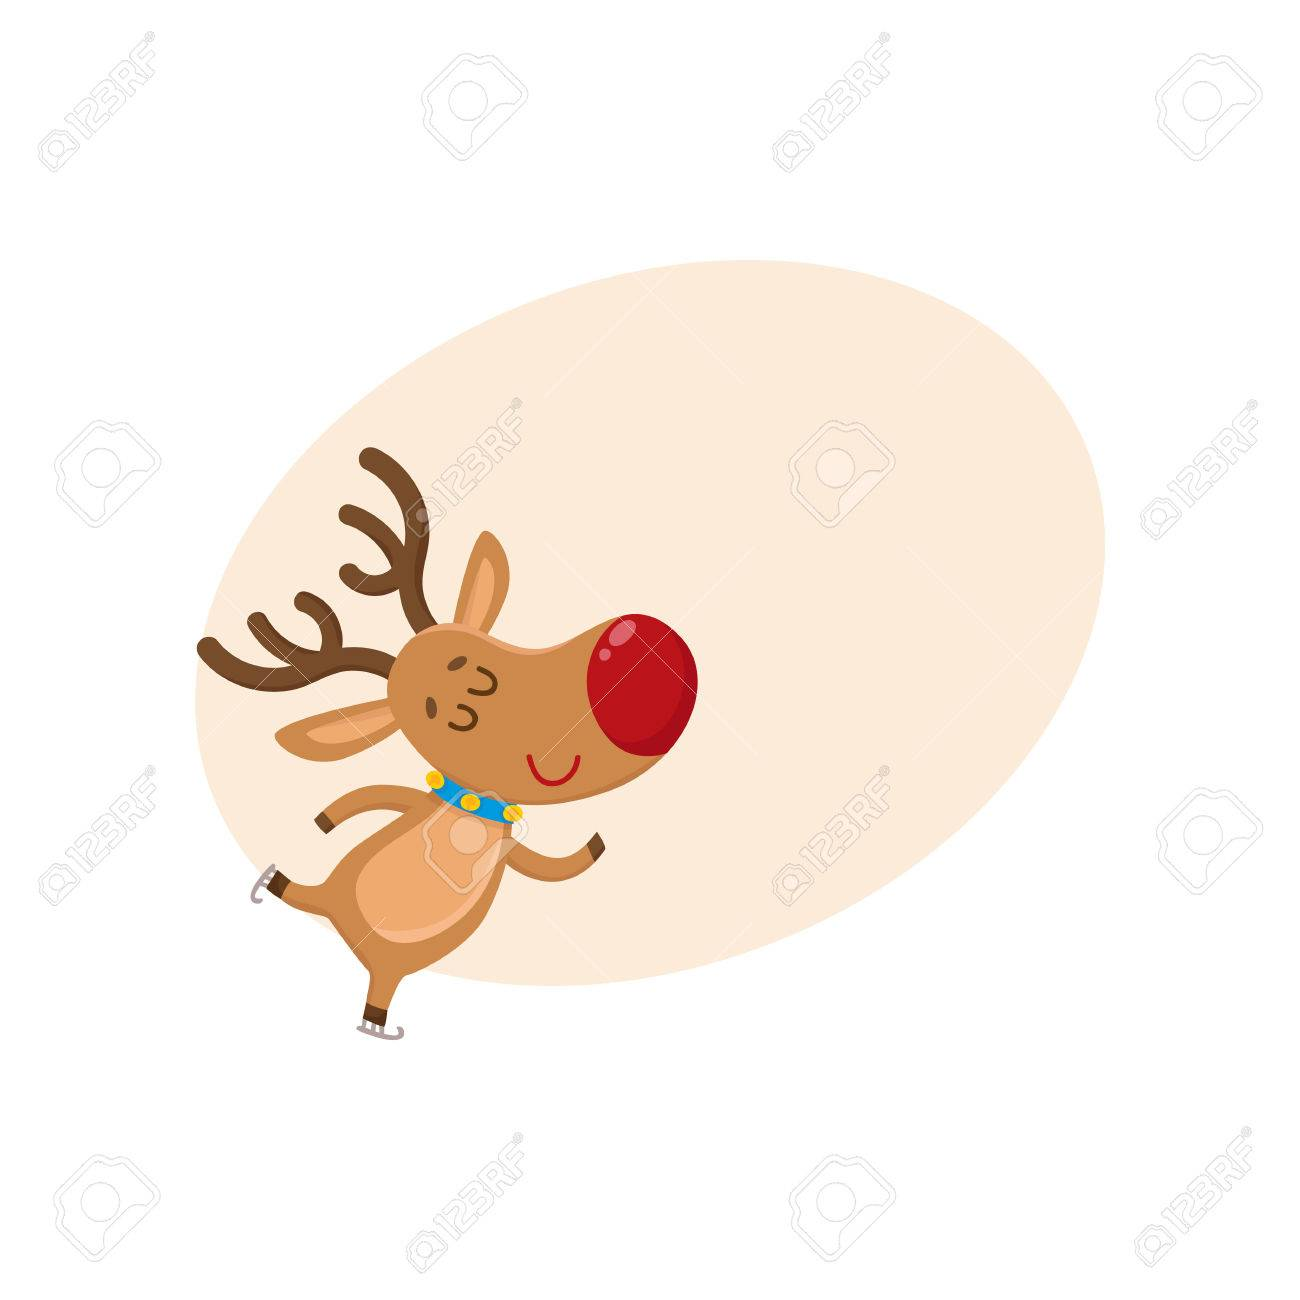 Cute And Funny Christmas Reindeer Ice Skating Happily Cartoon Vector Illustration With Background For Text